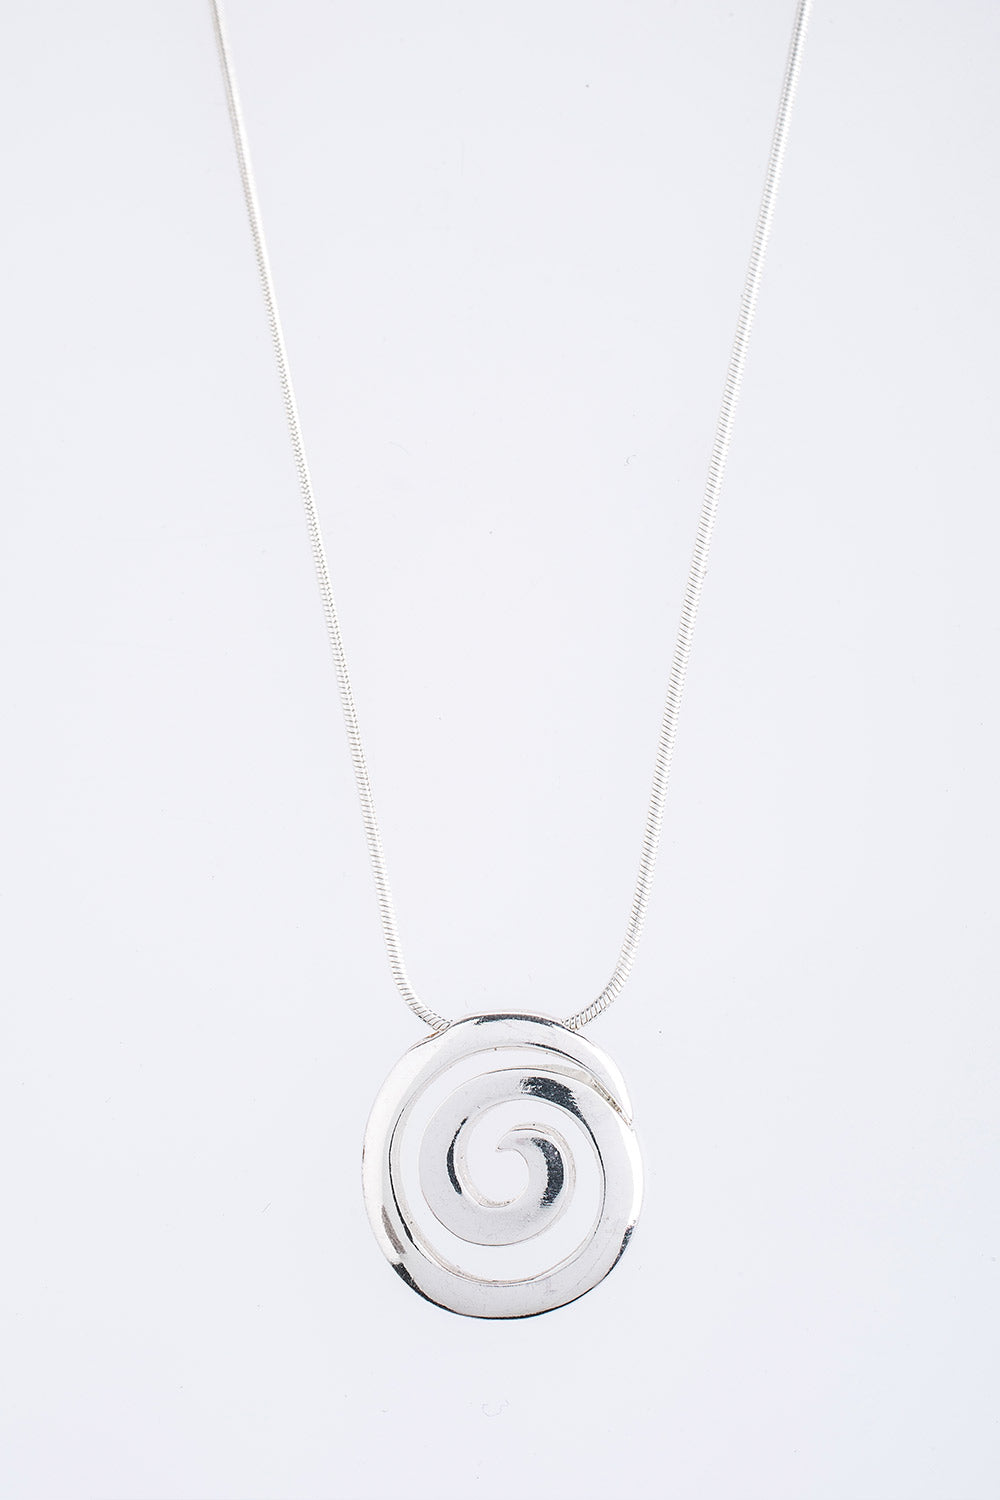 Type 4 Smooth Silver Spiral Necklace